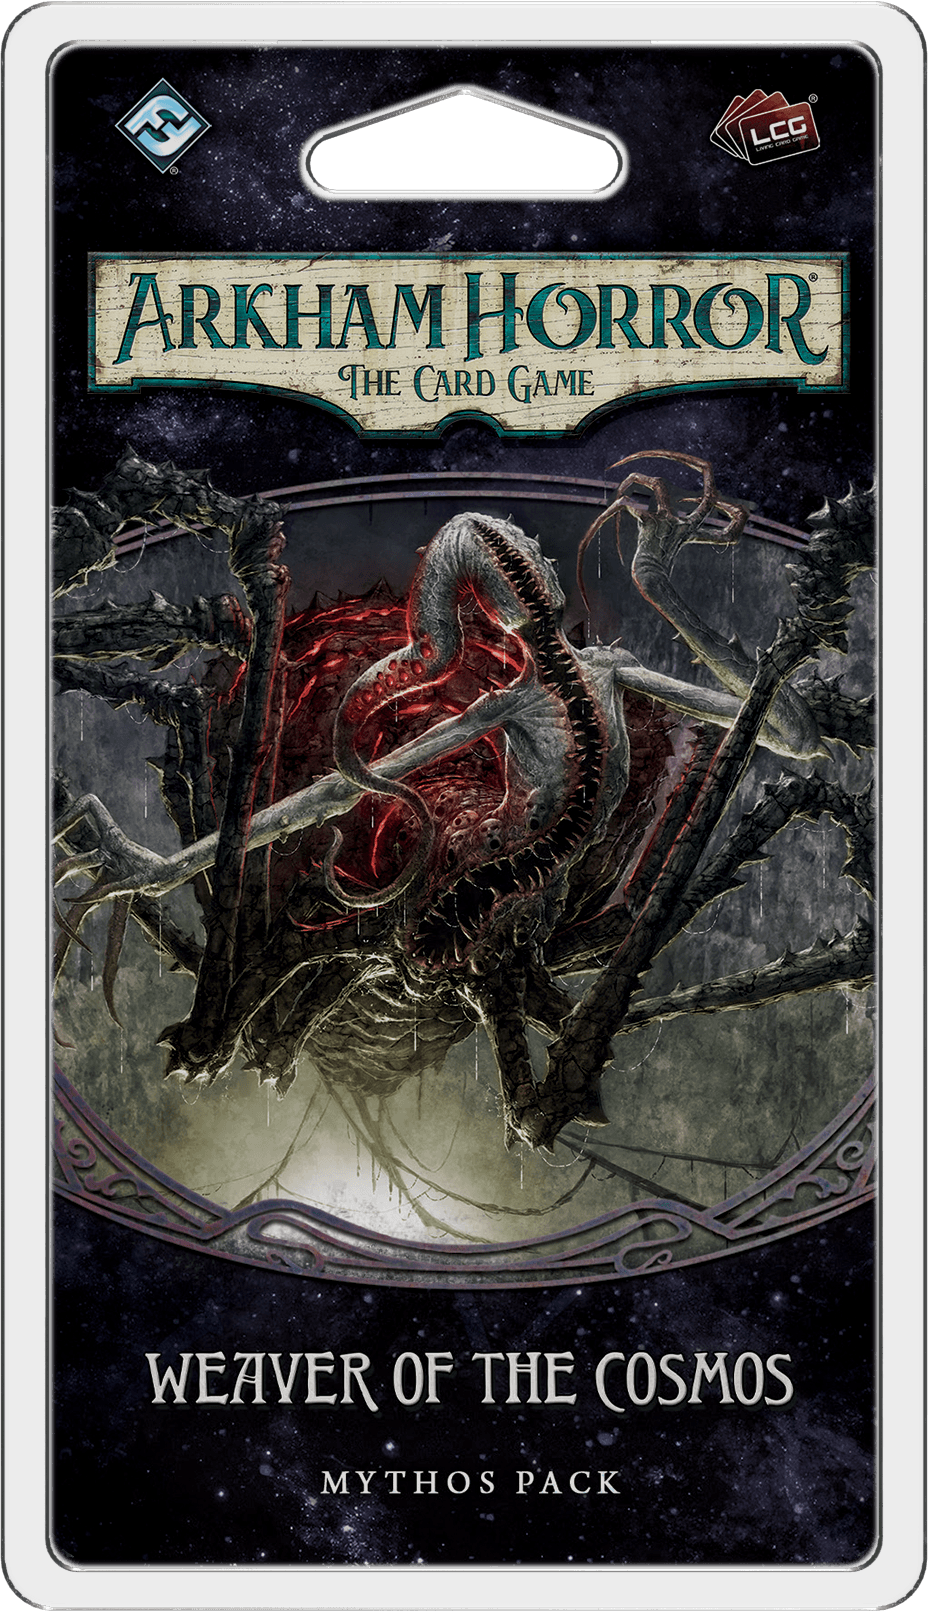 Arkham Horror: The Card Game – Weaver of the Cosmos